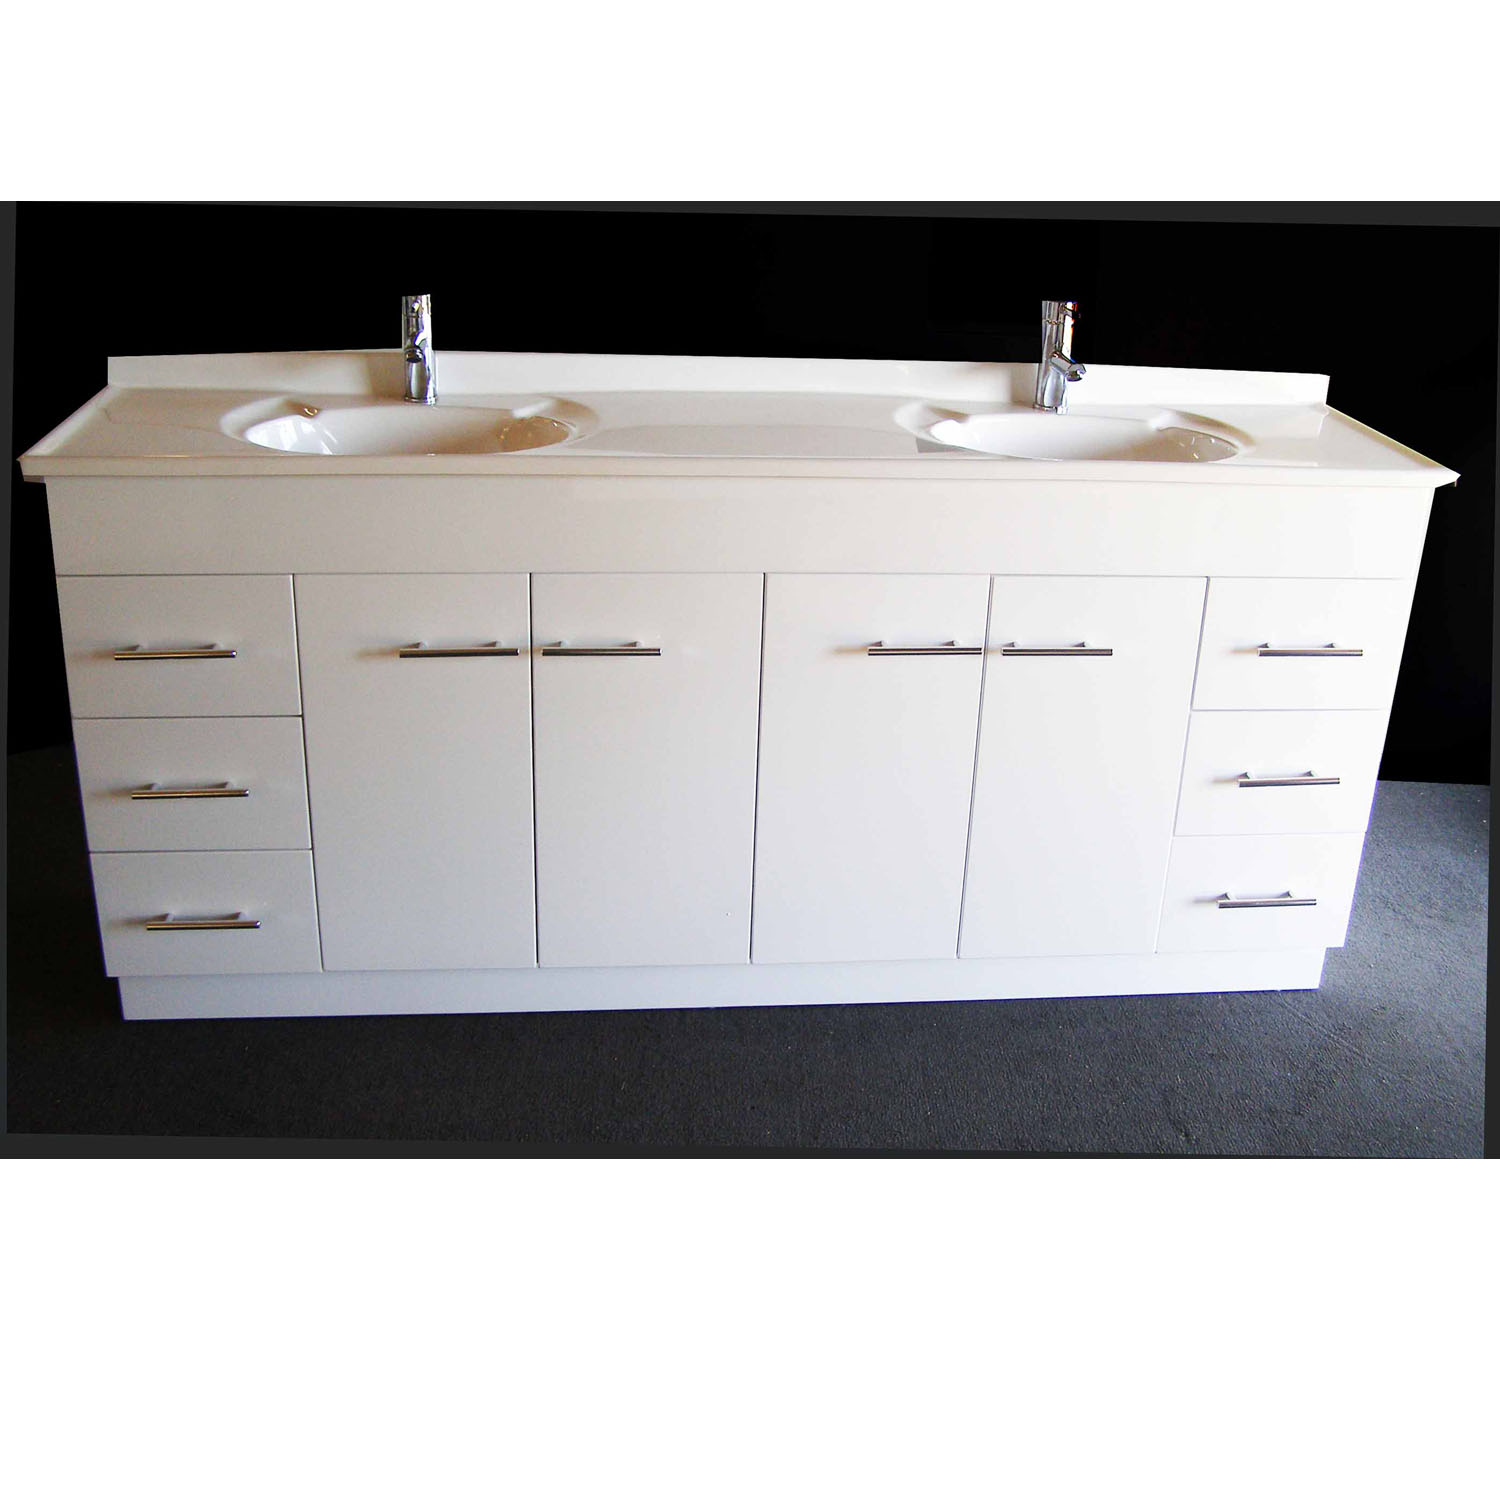 Bathroom Vanity Units Sydney Daedalus Wp 1800mm Bathroom Vanity Unit With Australian